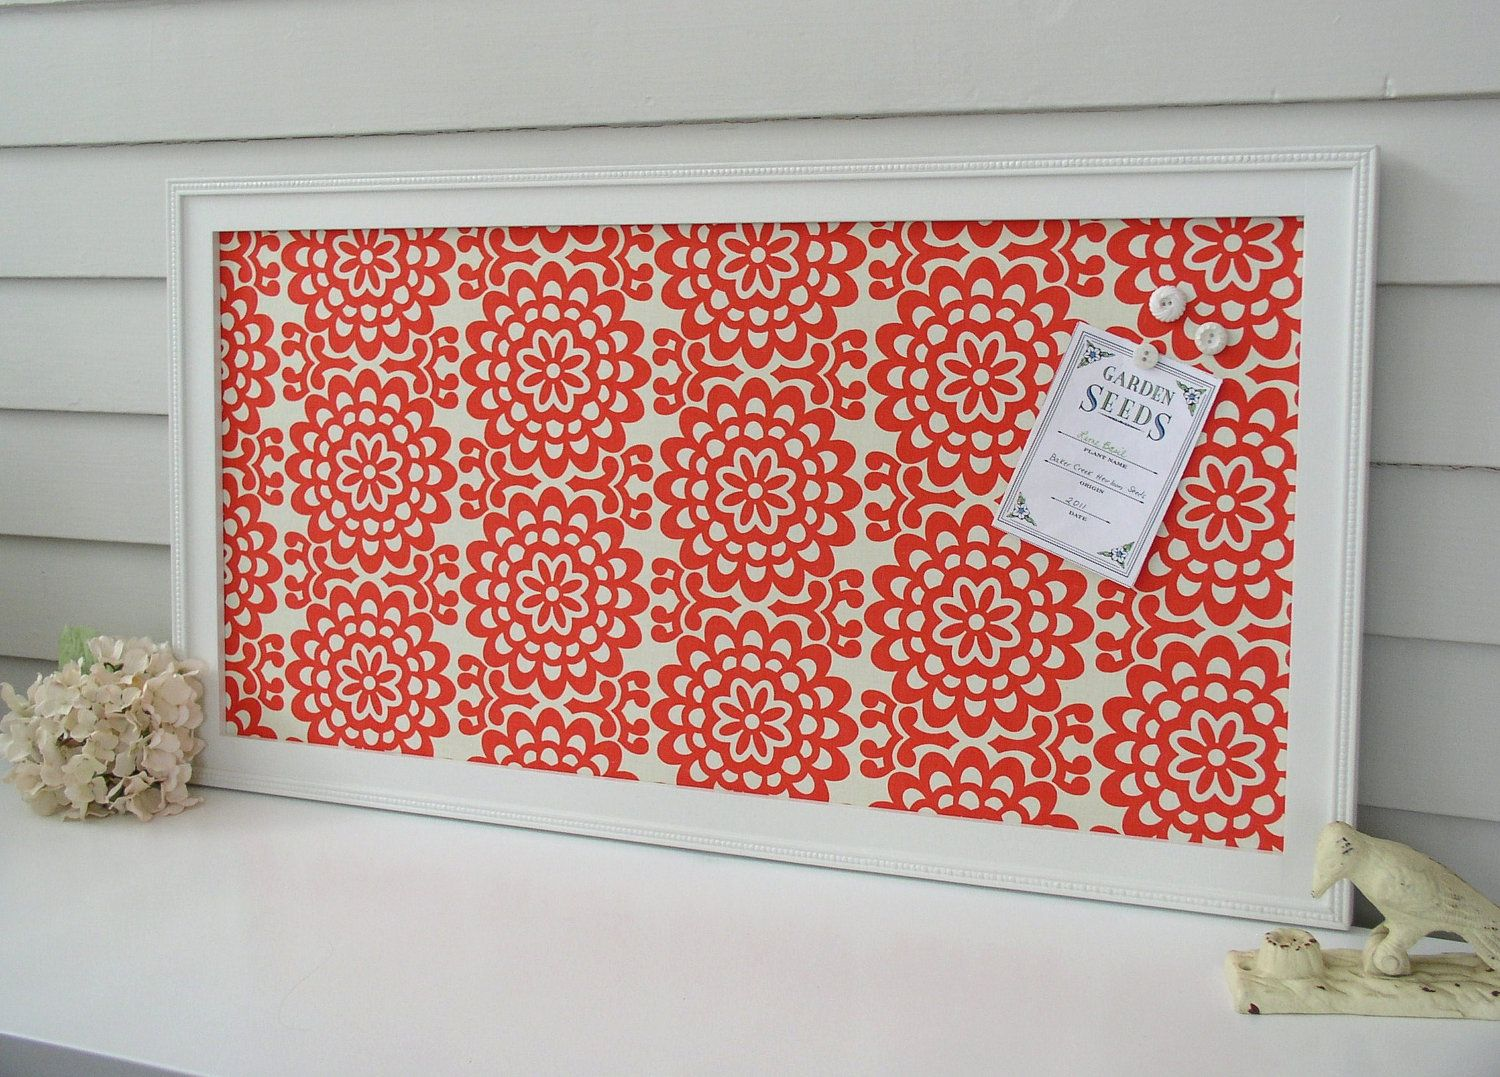 Bulletin board message center magnetic organizer framed memo magnet board with coral red floral amy butler fabric shabby chic via etsy